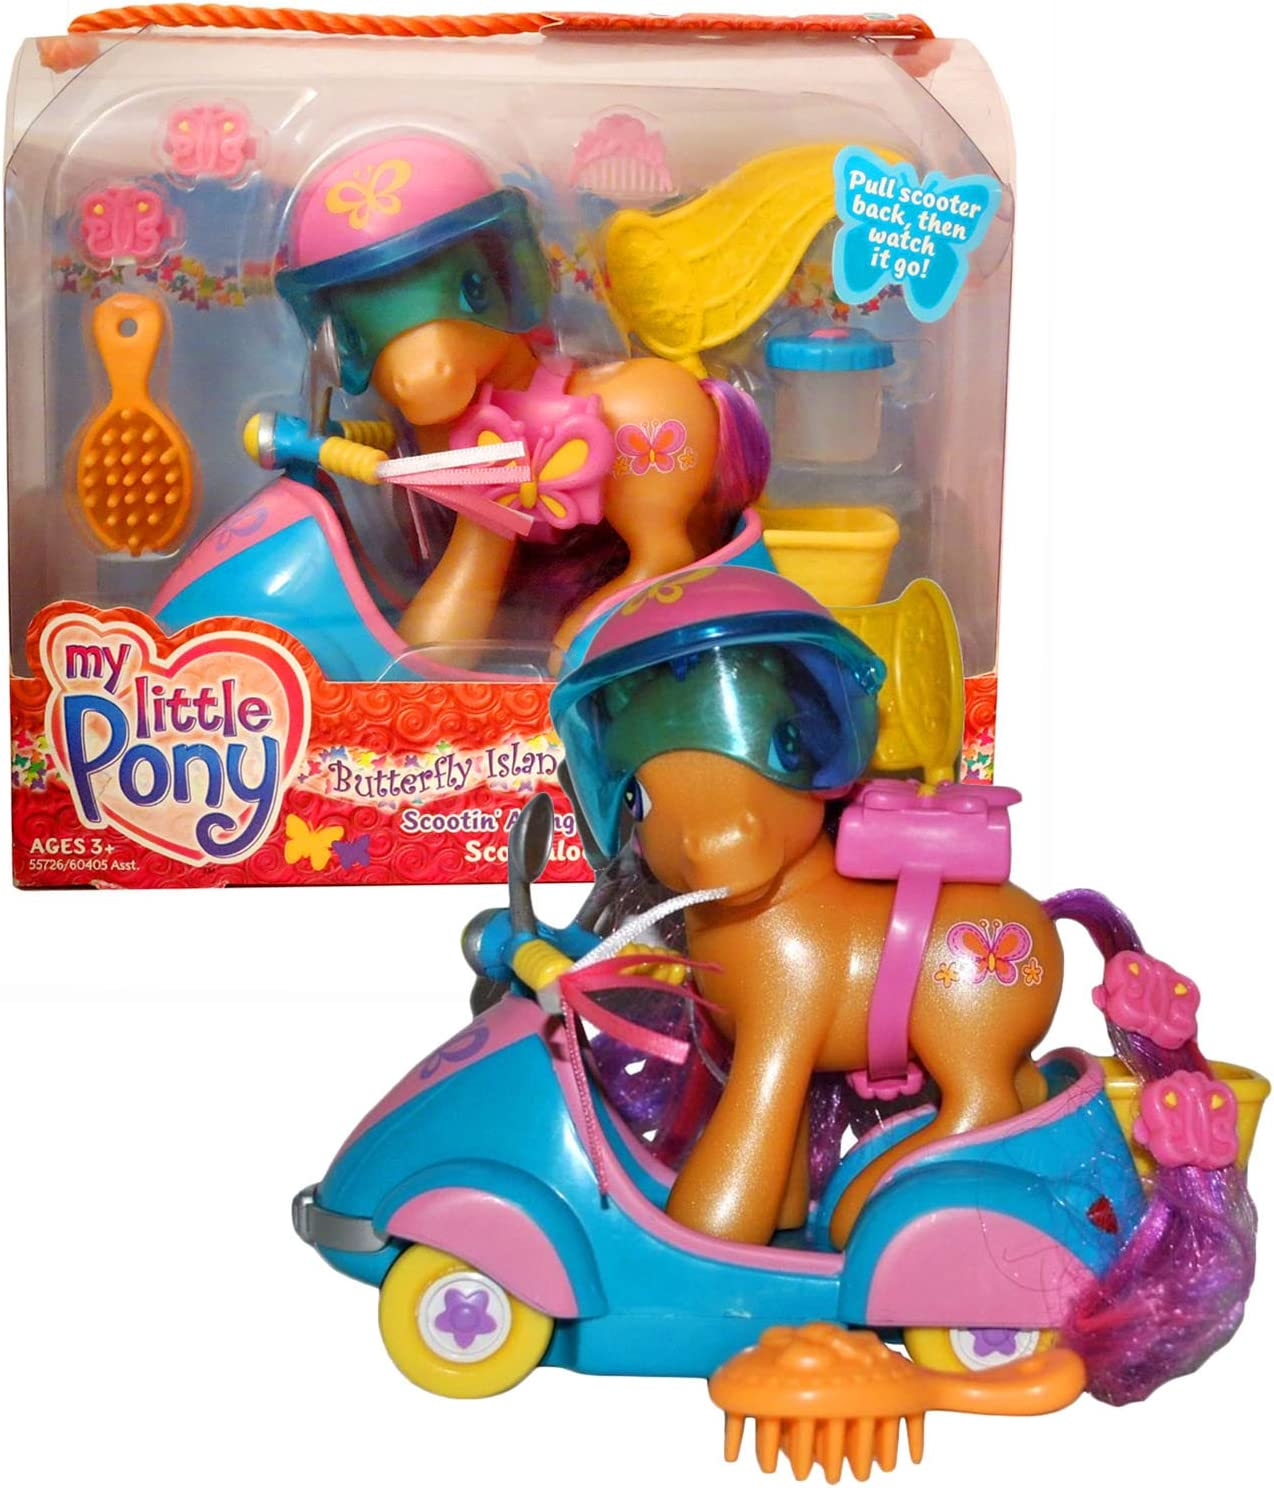 Amazon Com Year 2004 My Butterfly Island Little Pony Series 4 Inch Tall Figure Scootin Along With Scootaloo Plus Helmet Container Hairpin And Hairbrush Toys Games See our huge selection of cycling helmets for men. butterfly island little pony series